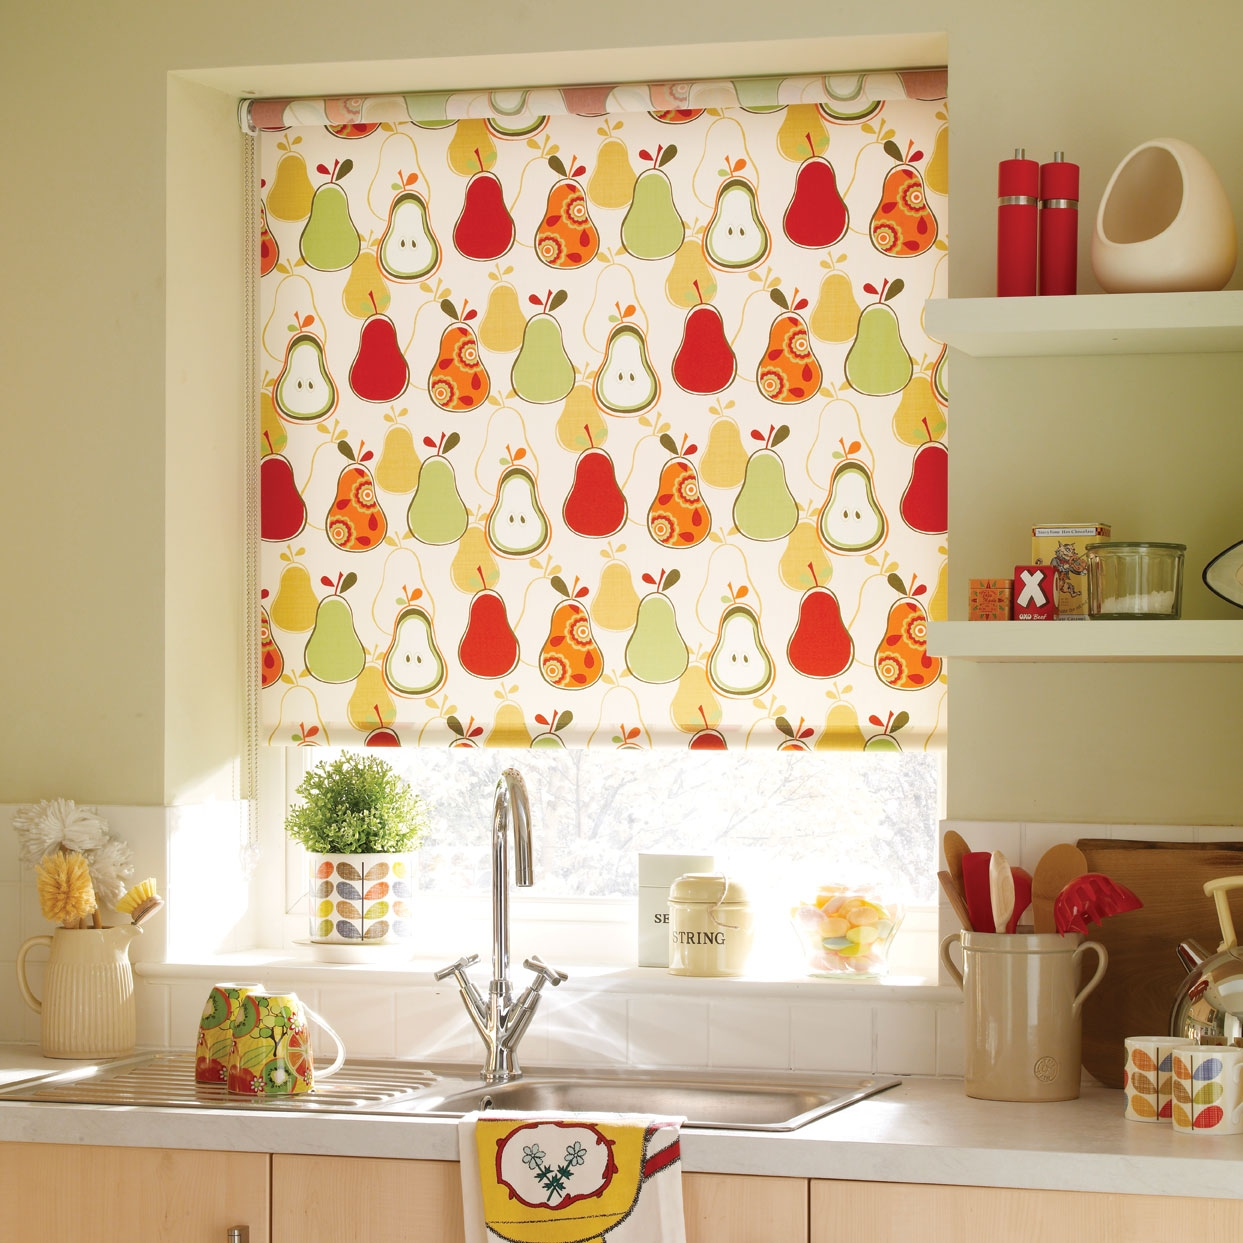 Parklaneinteriorcouk Roller Blinds Throughout Orange Roller Blinds (View 14 of 15)